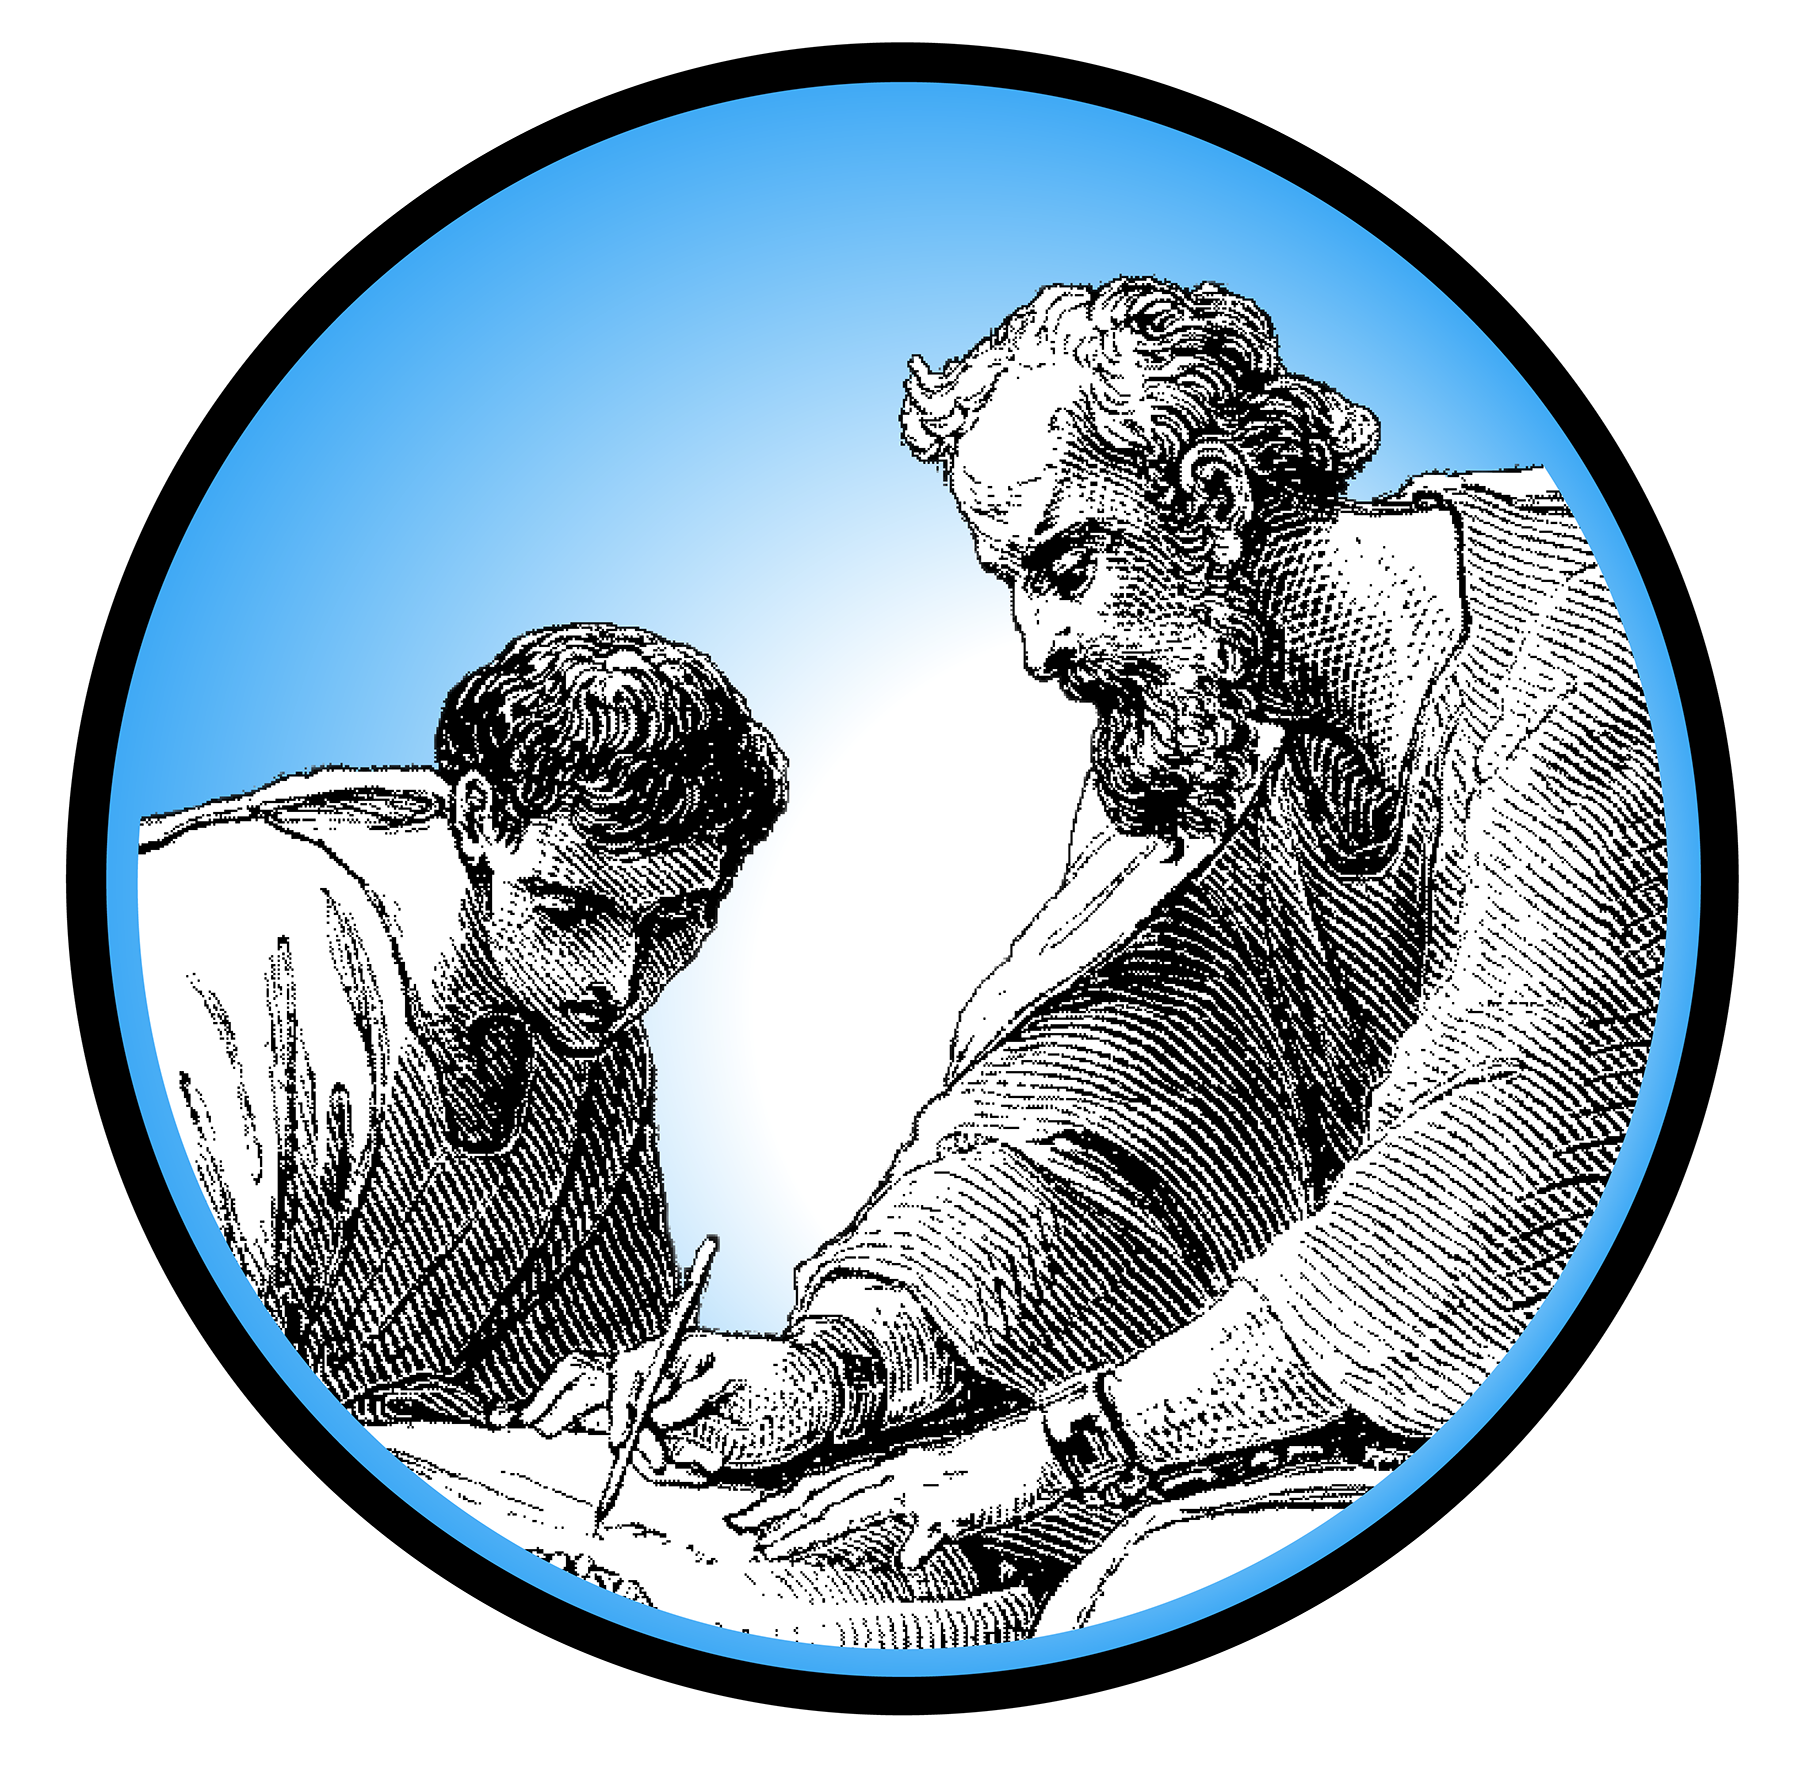 BibleWorks - Bible software with Greek, Hebrew, LXX, and